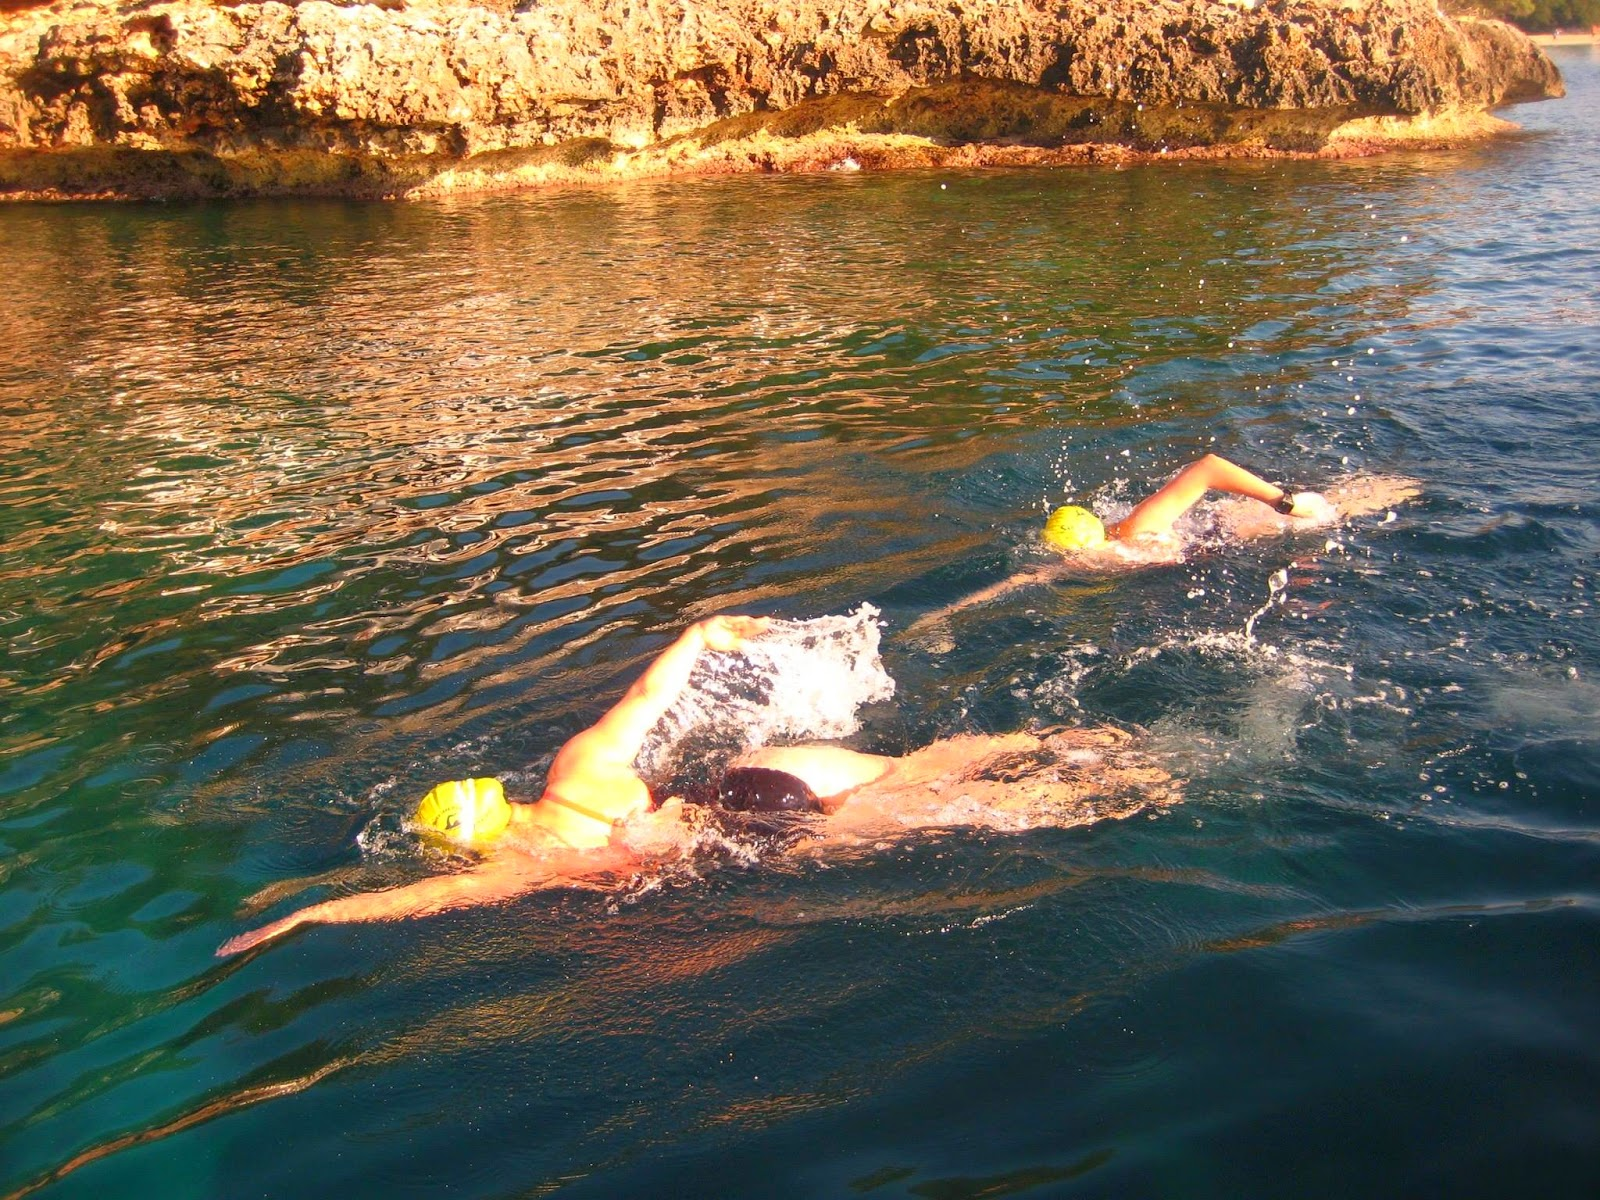 Channel swim training